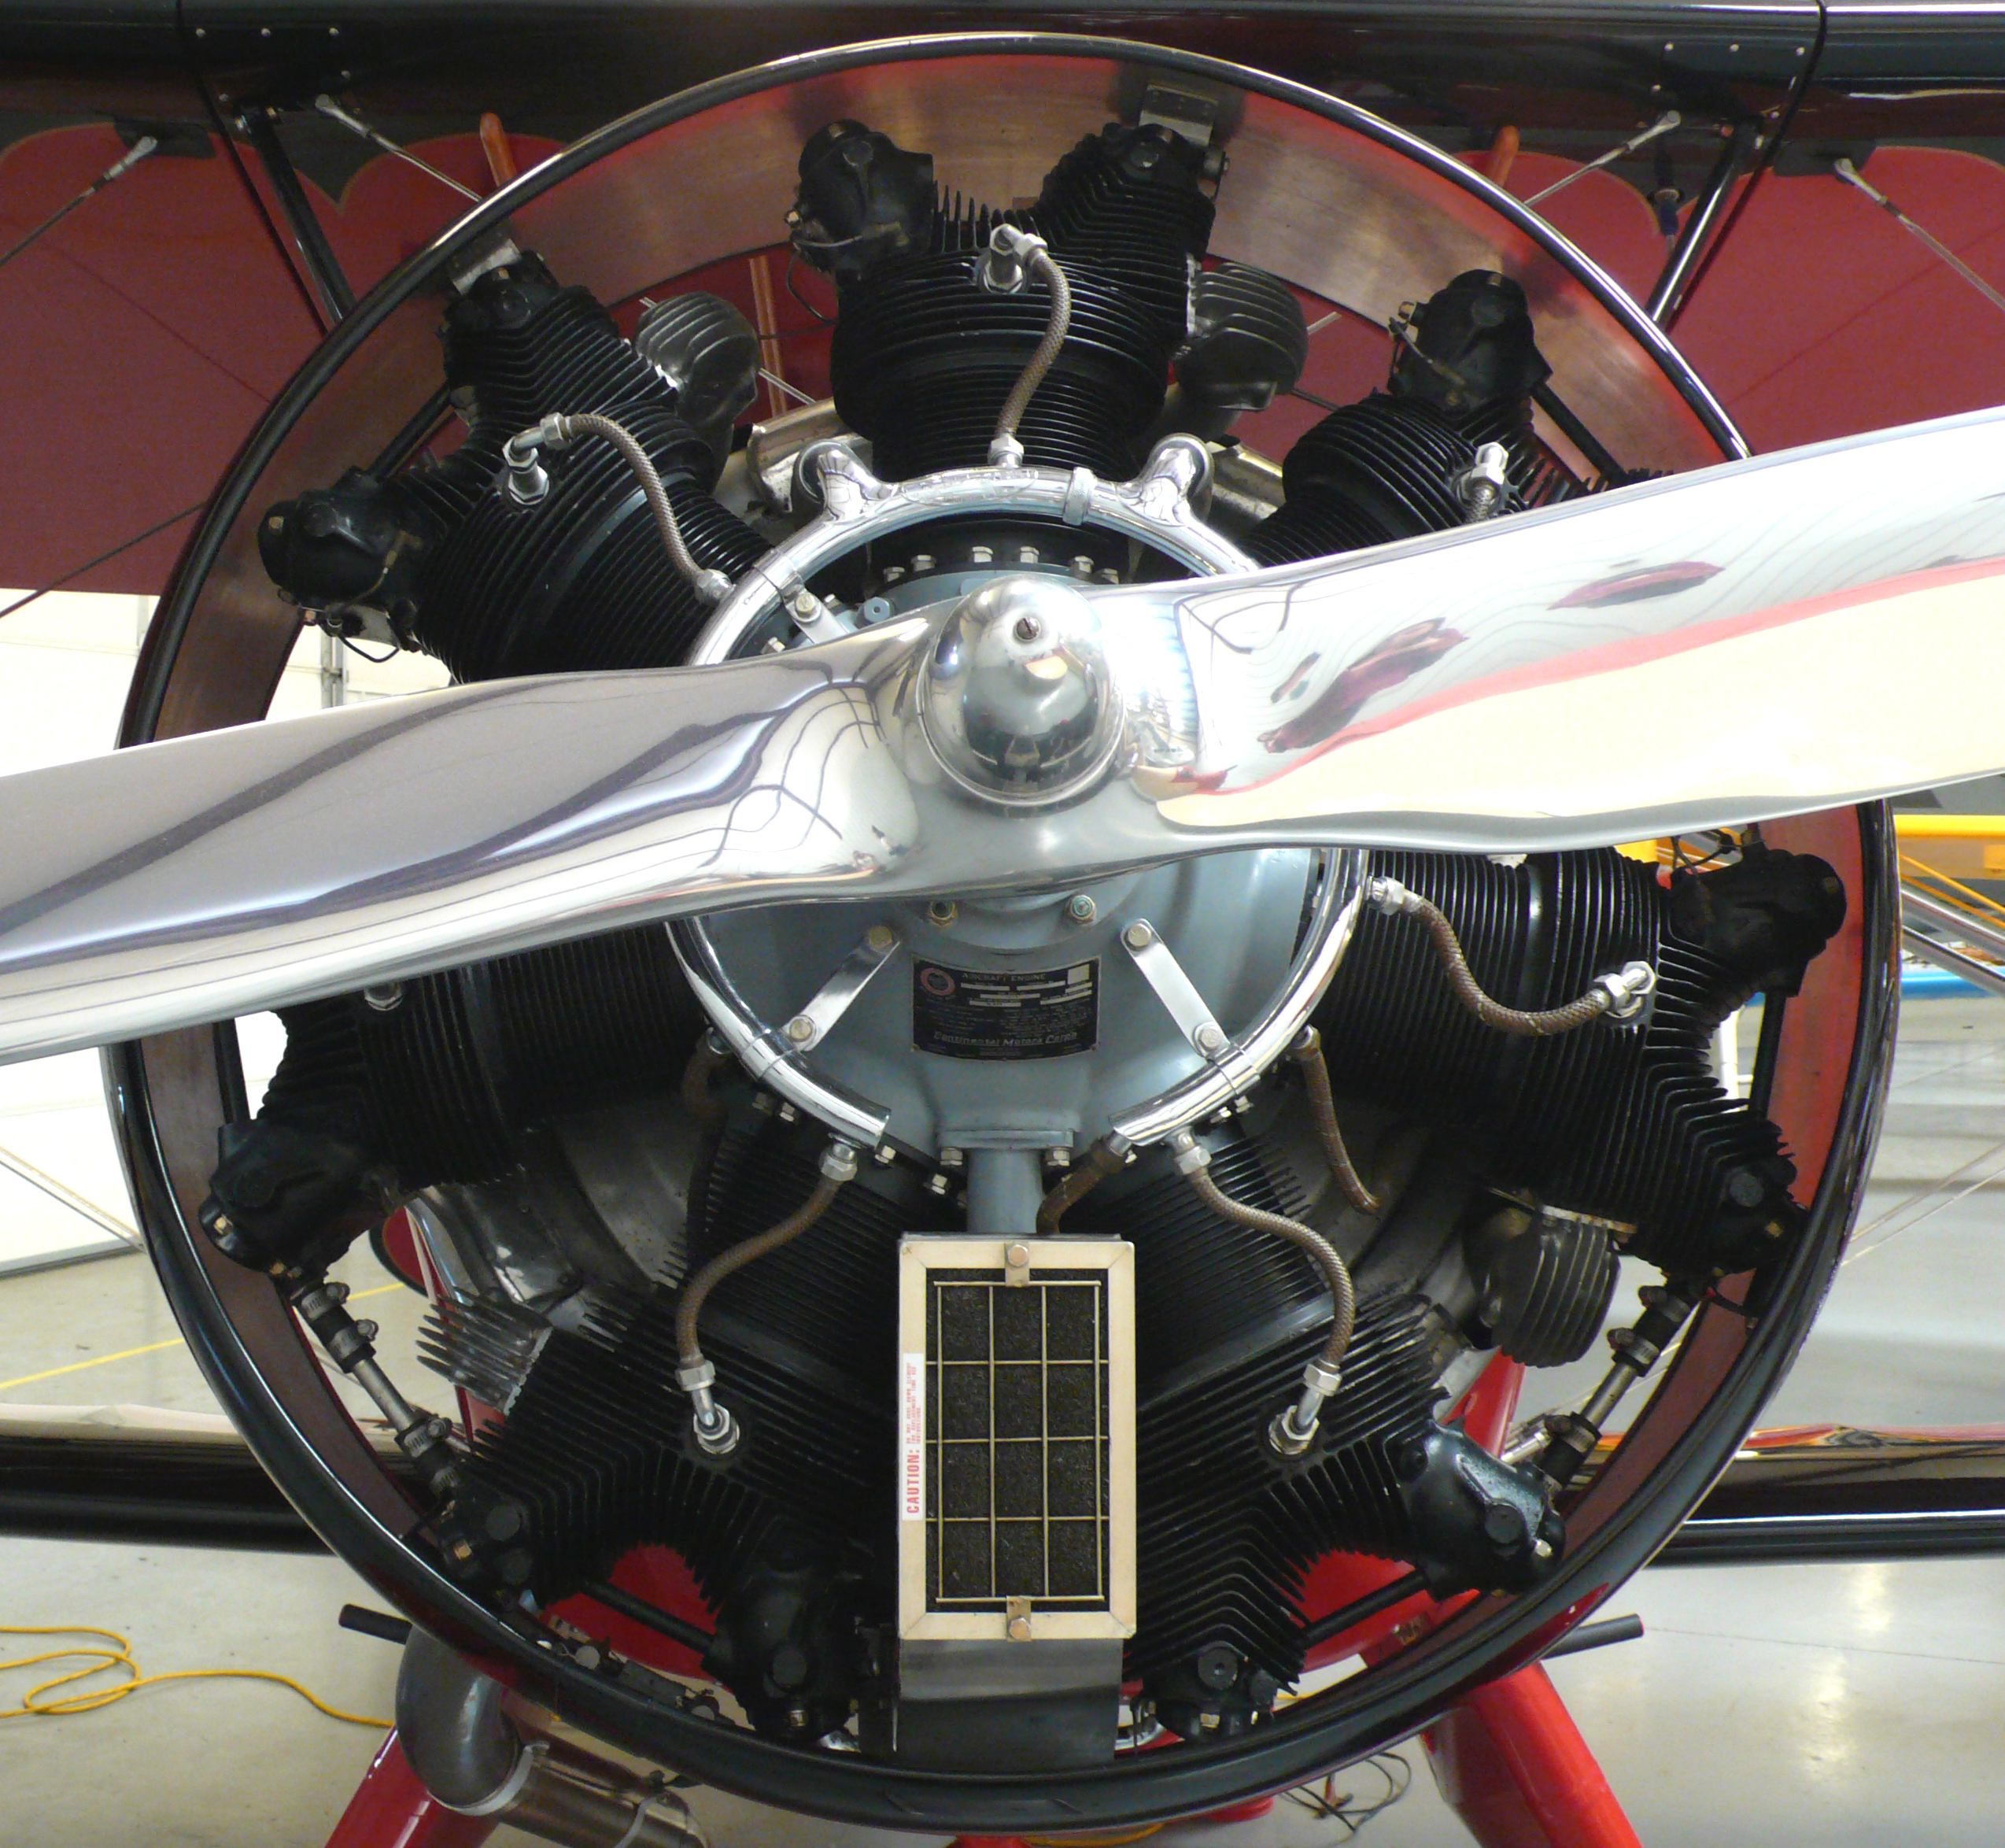 Mechanical Stream - Rotary Aircraft Wing (RA), Jet Engine (JE) and Piston Engine (PE)